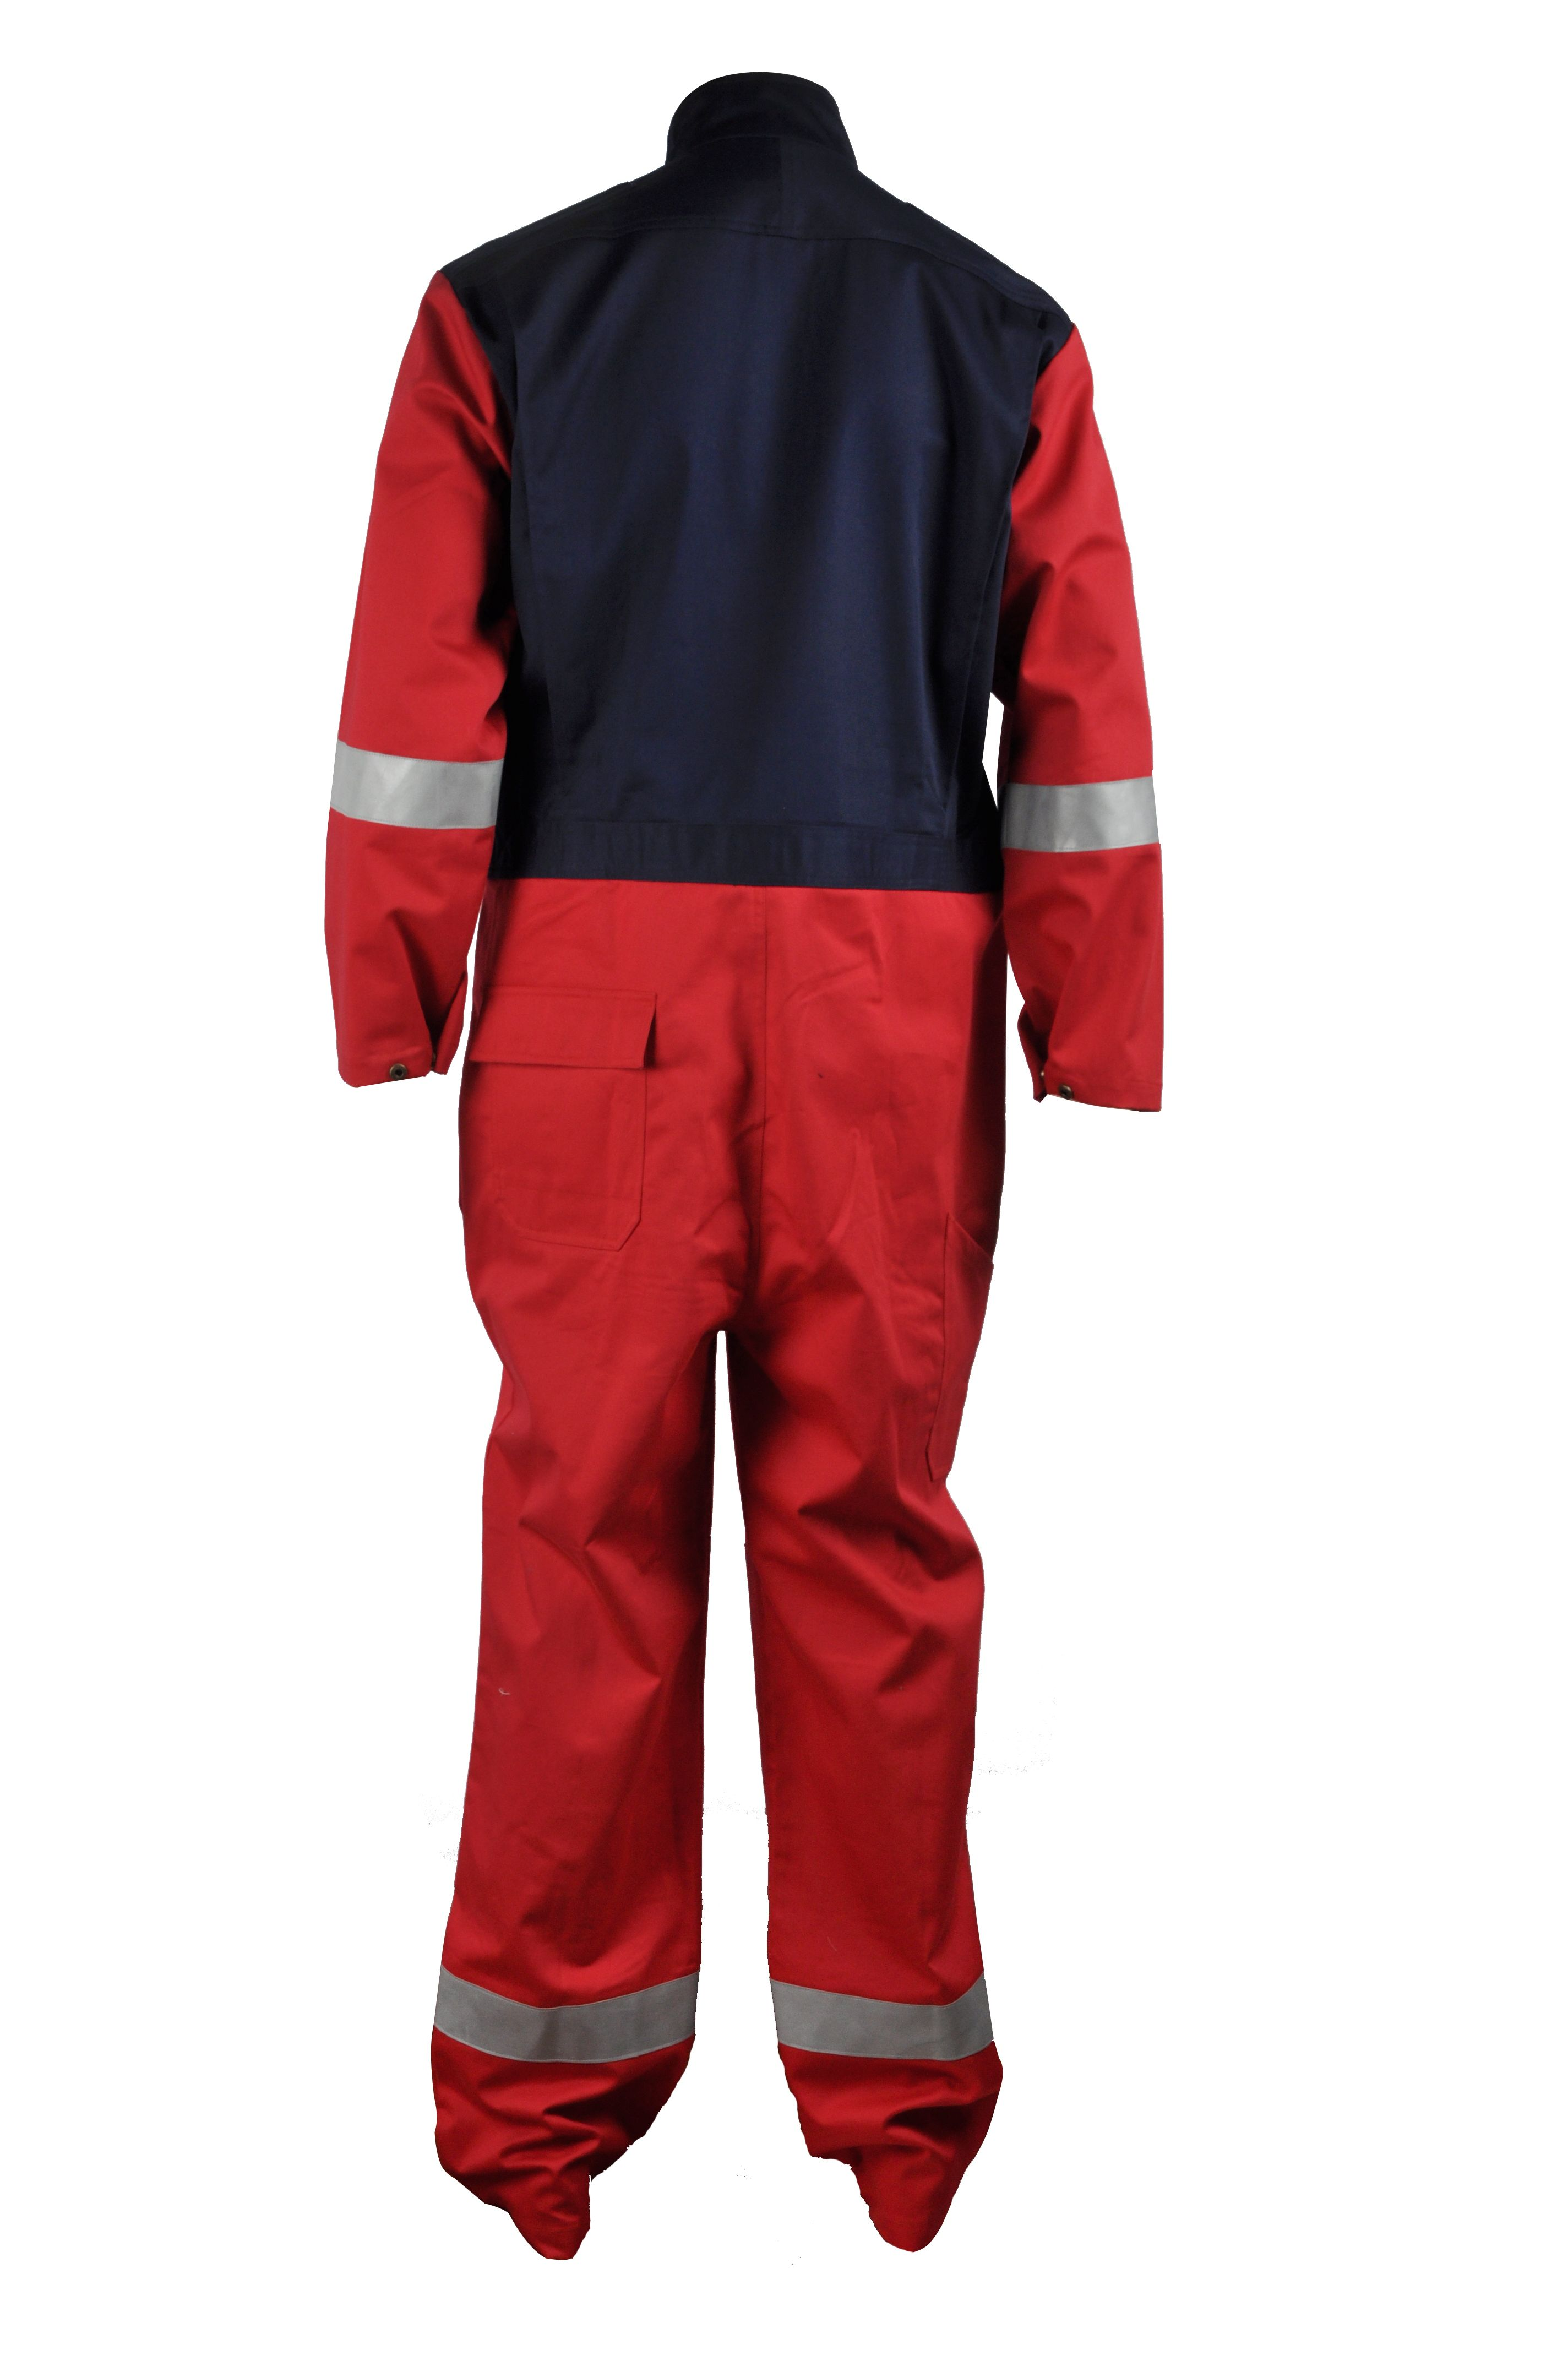 b6ad5fcc164c workwear-xinkeprotective  two tones coverall with reflective tapes ...